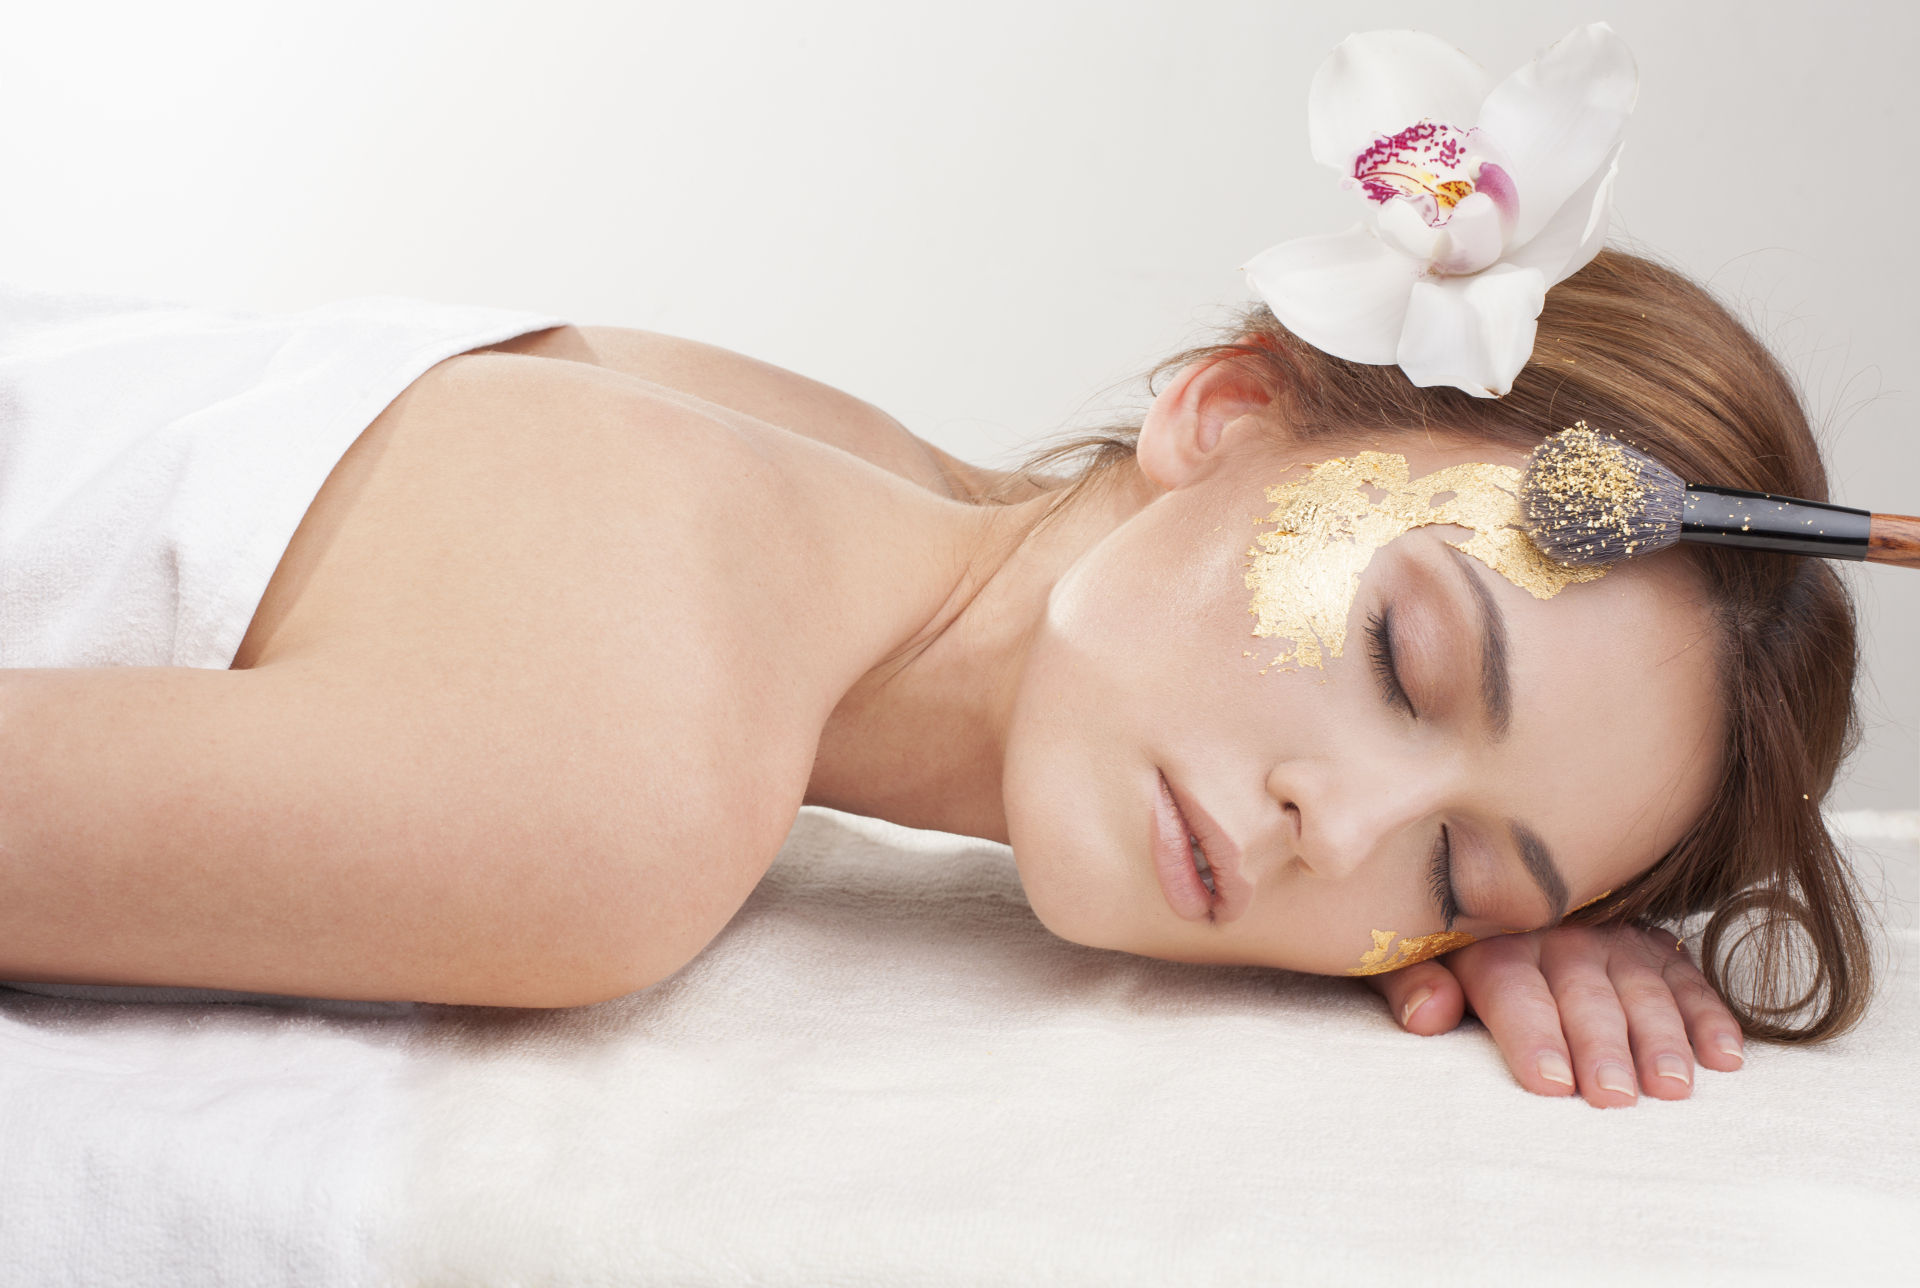 Woman Laying at Spa 24K Gold Leaf Mask